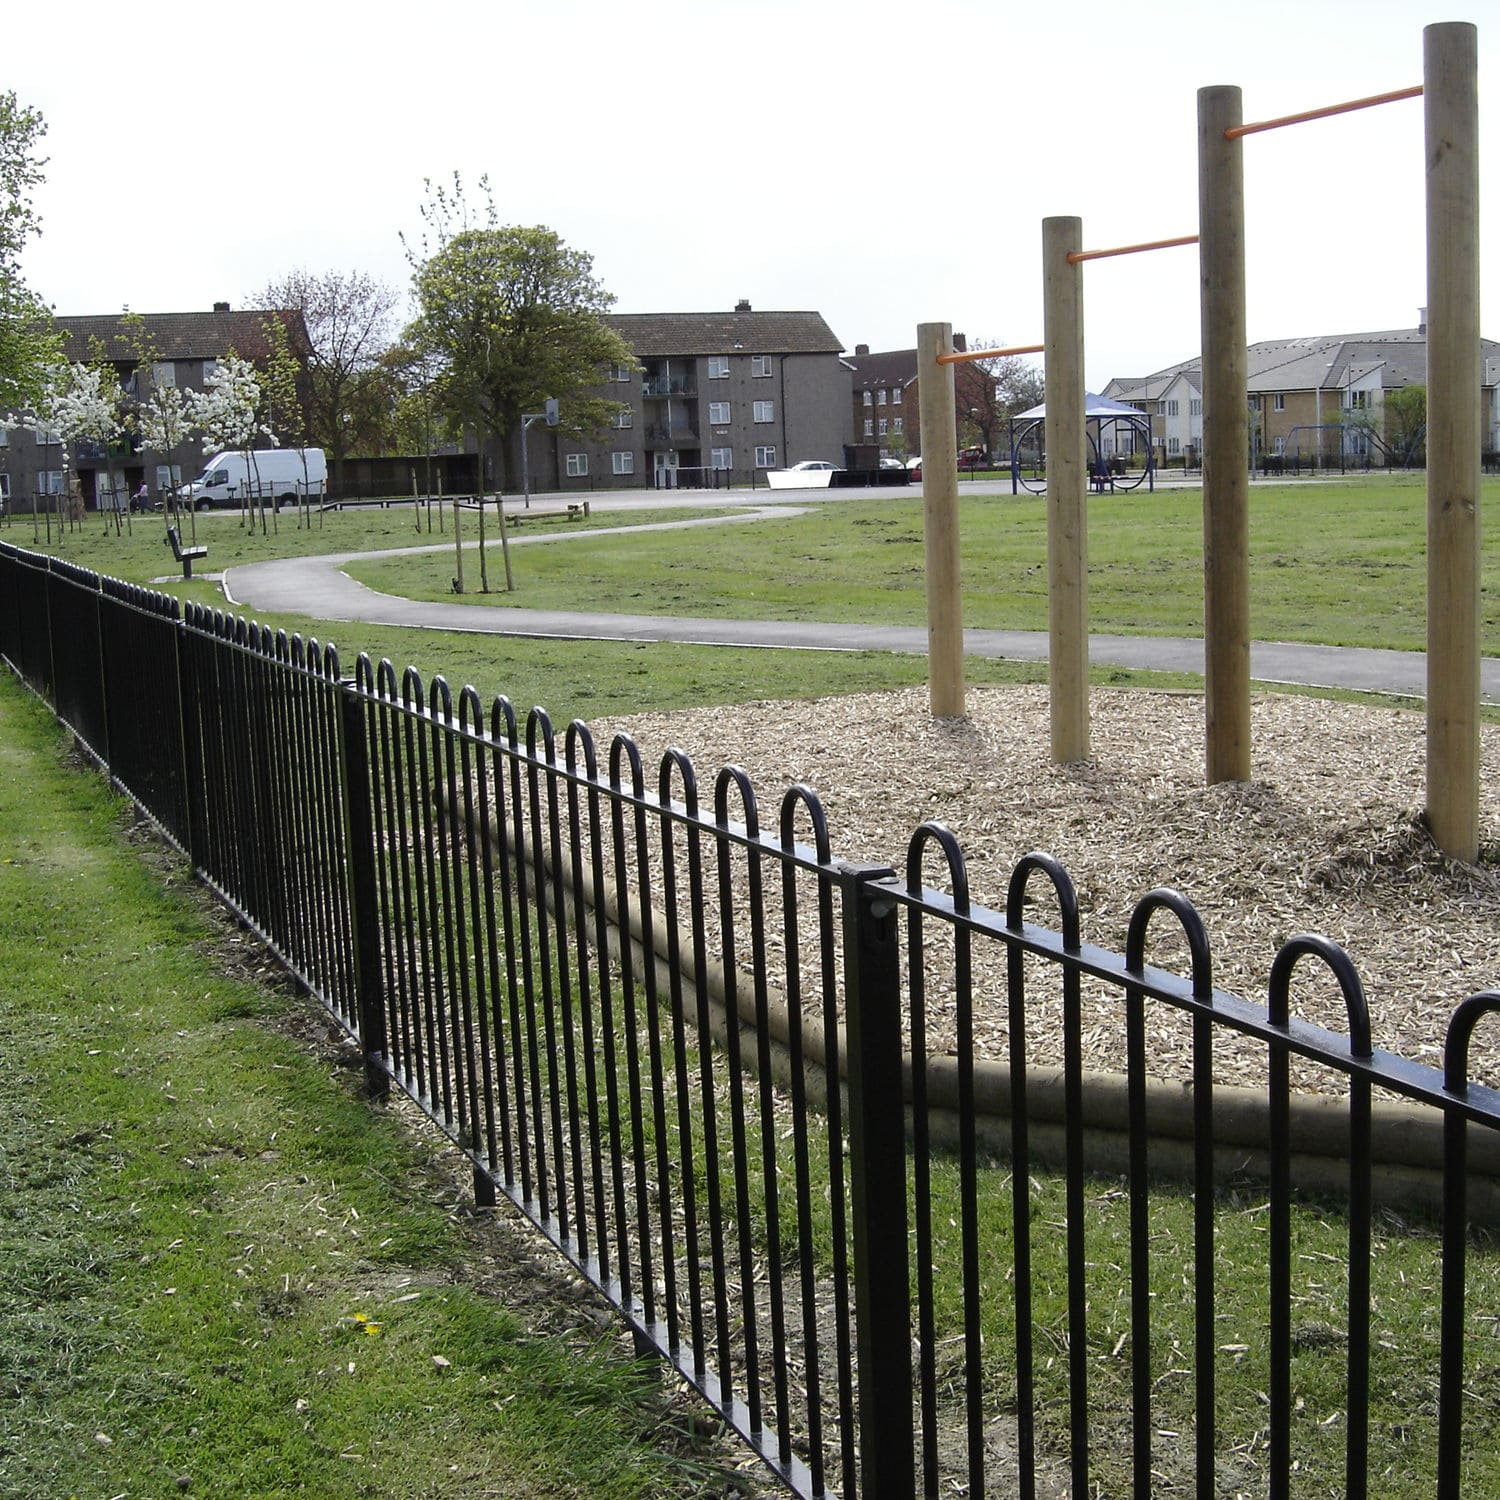 Garden Zaun Garden Fence For Public Spaces For Athletic Fields With Bars